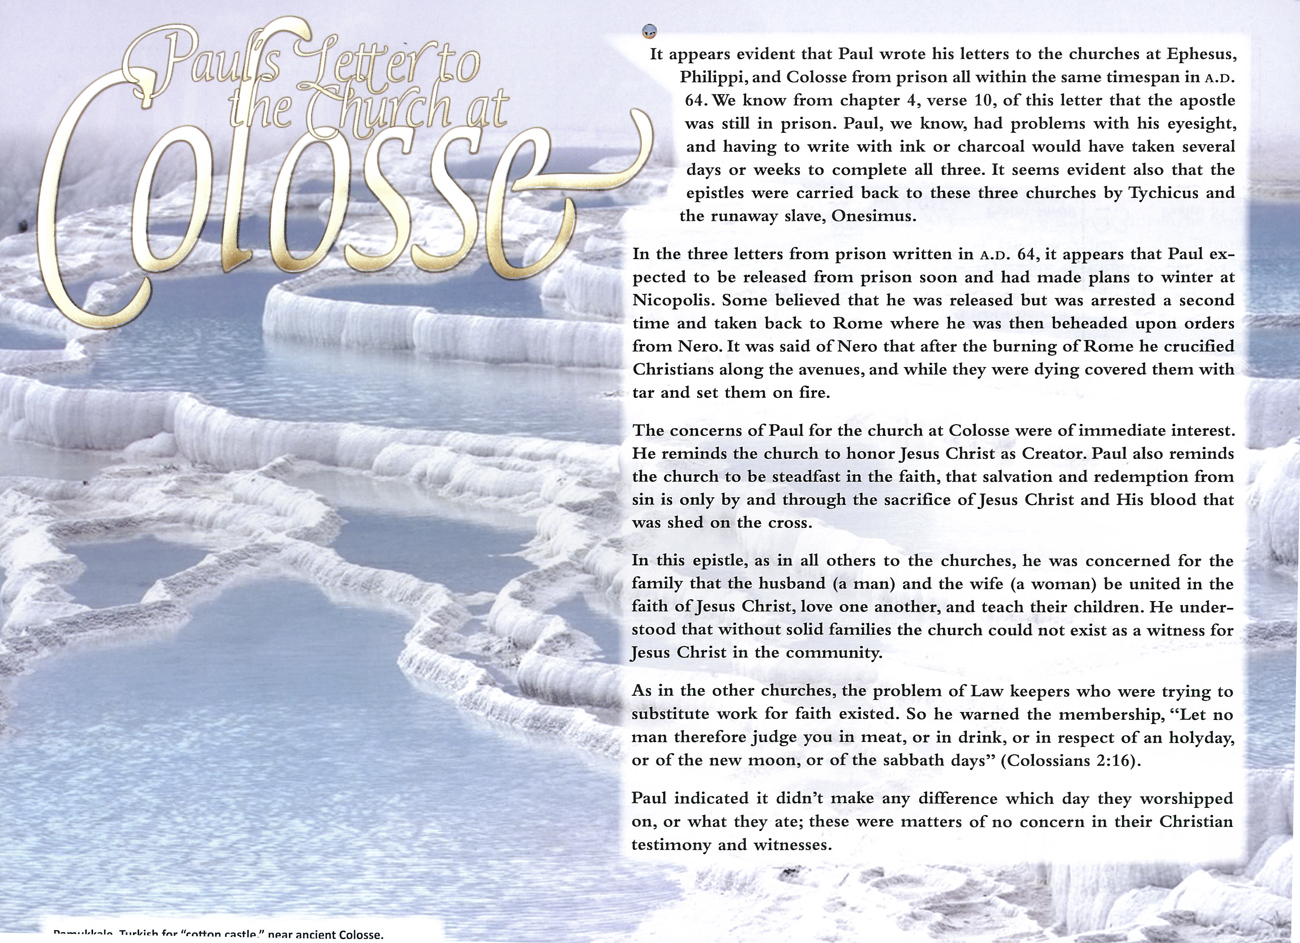 2012 Prophecy Calendar: July - Paul's Letter to the Church at Colosse